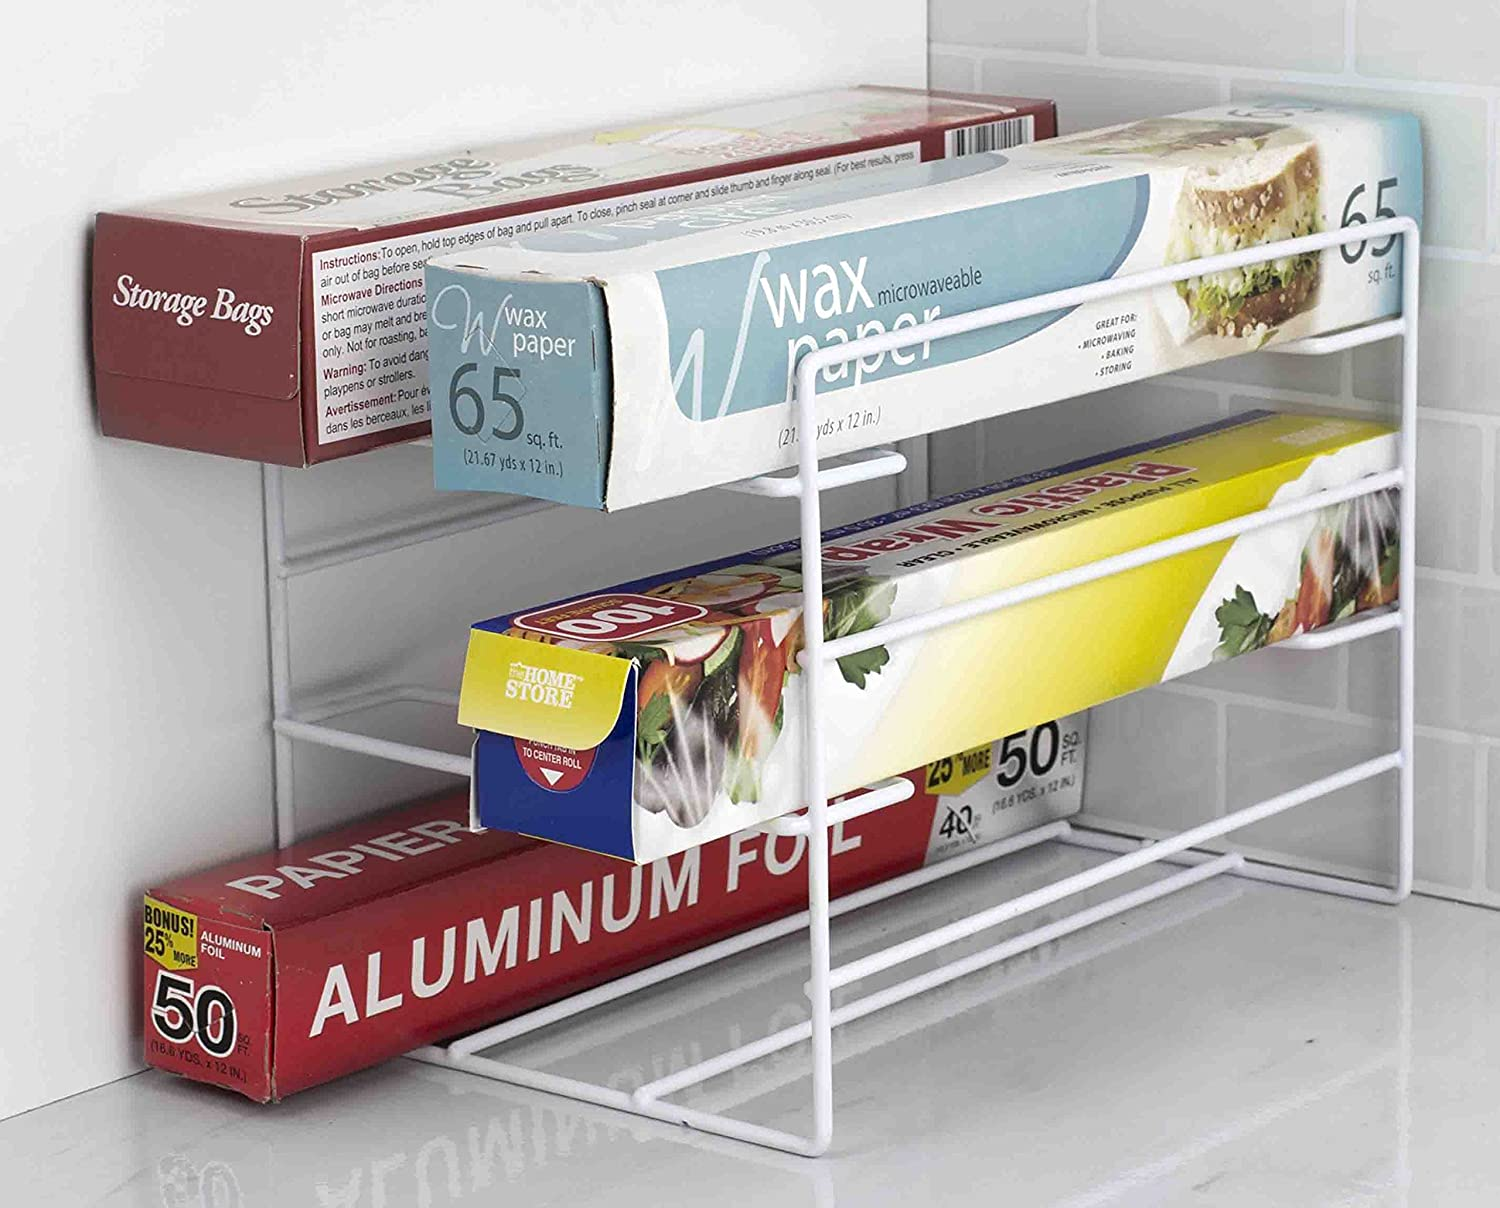 Home Basics 3 Tier Heavy Duty Kitchen Countertop or Cabinet Wrap Organizer for Food Wrap, Foil, Wax Parchment Paper, Plastic Bags White Finish